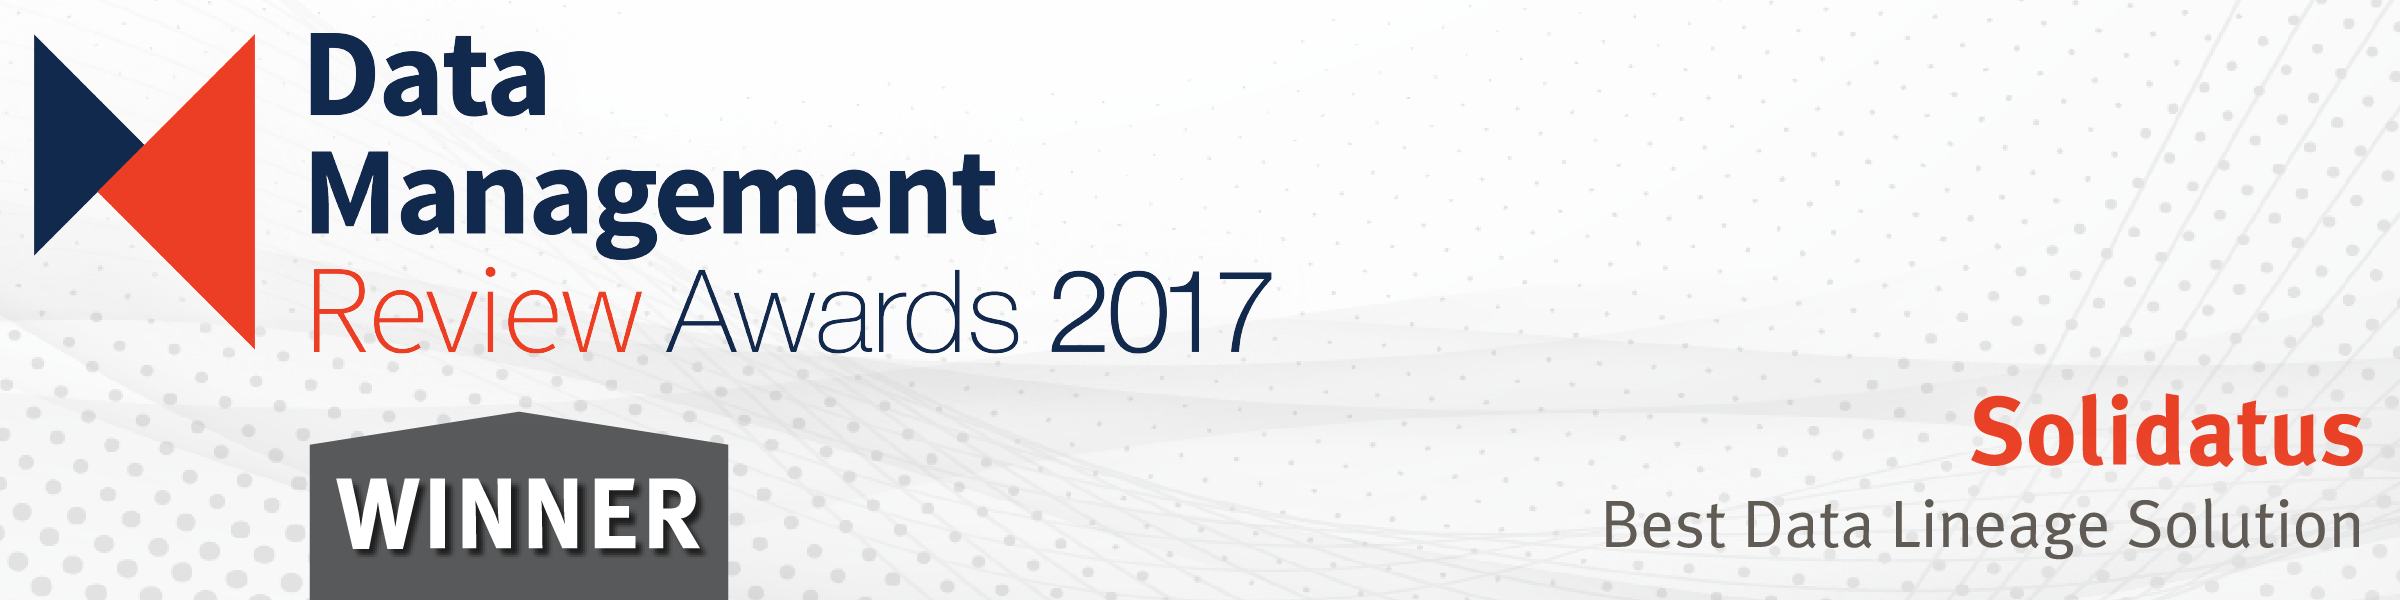 Solidatus named best data lineage solution at DMR Awards 2017